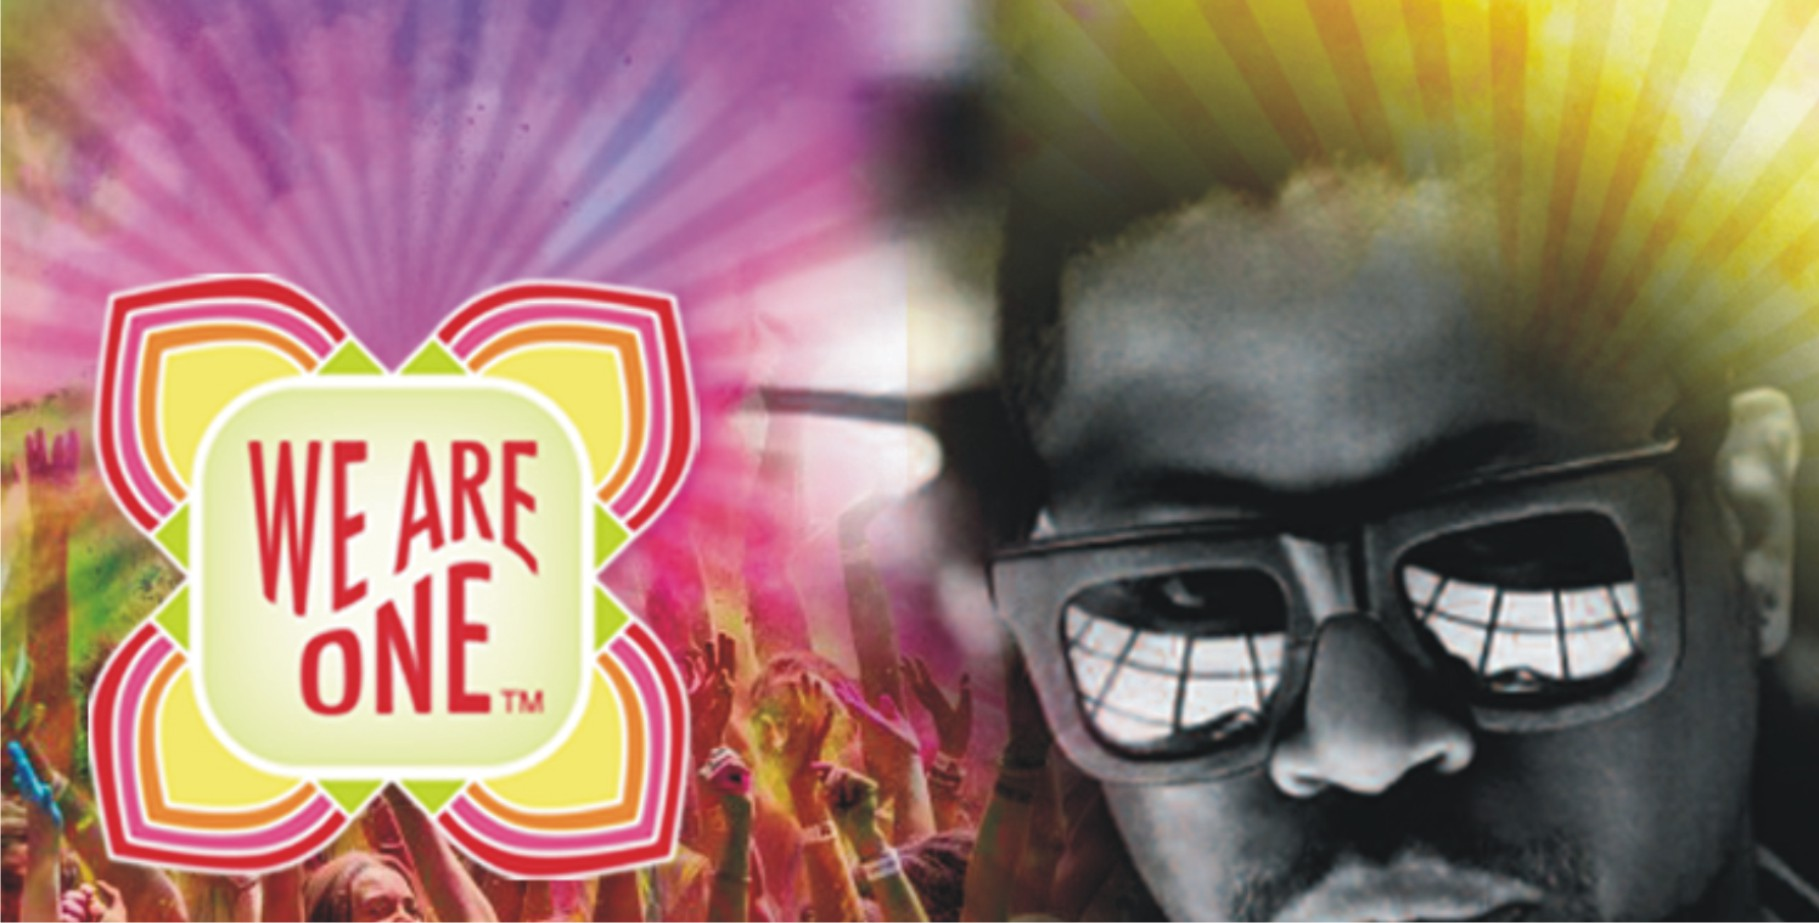 We Are One colour festival set to entertain South African music fans